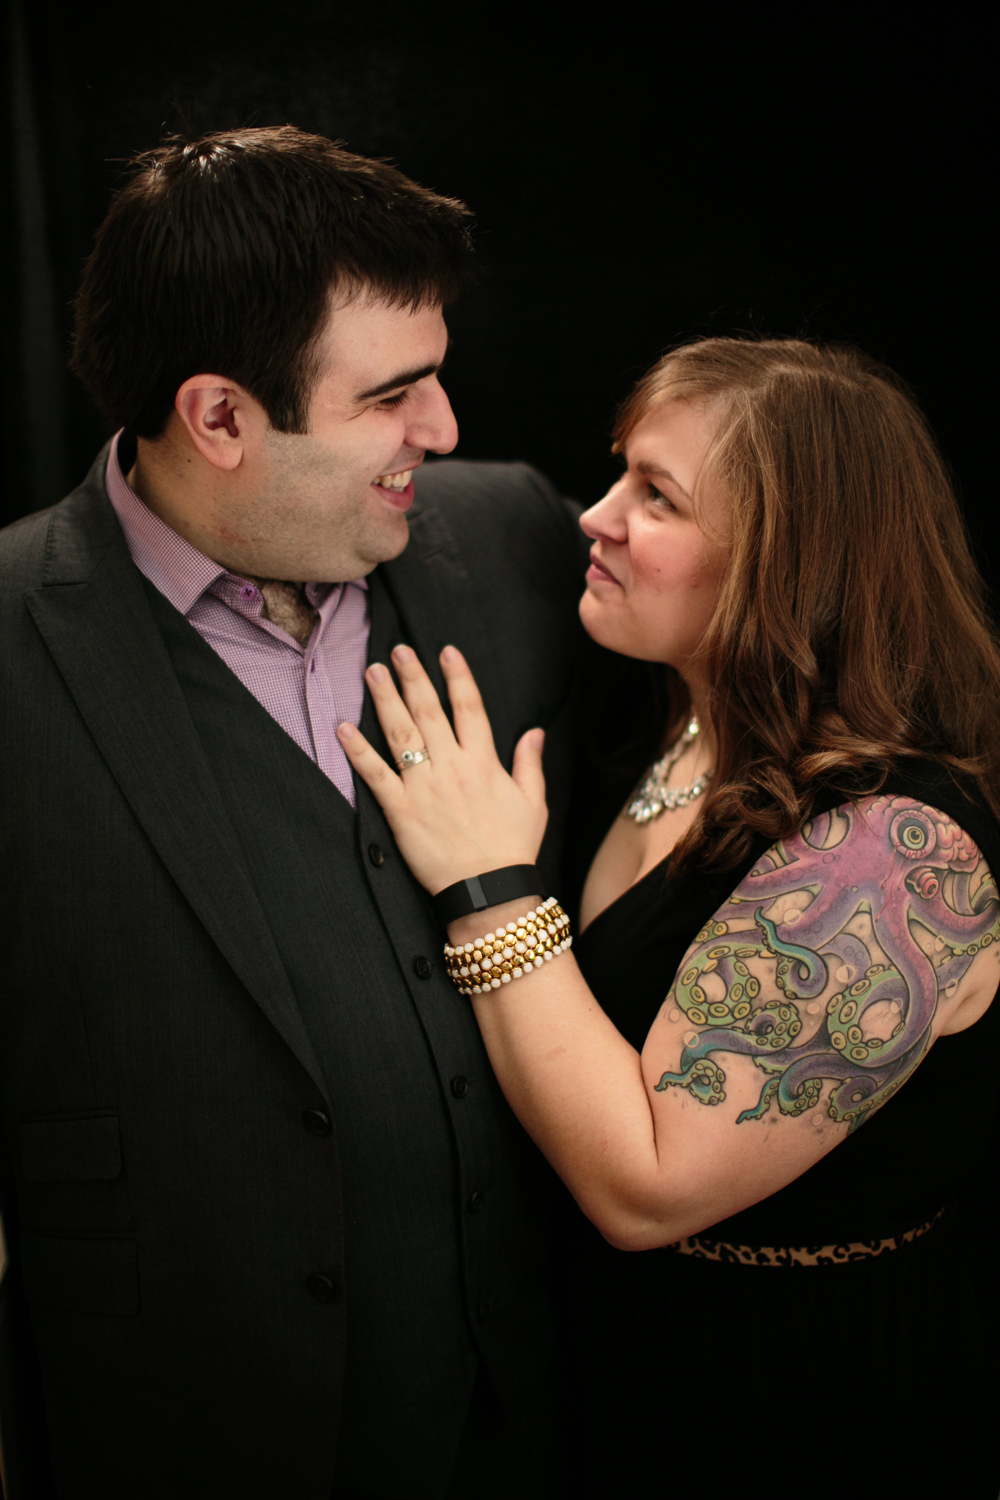 Sarah and Chris of Smitten Chickens. Chris isn't usually in a suit when I see him, so I kind of hit on him. #dreamy